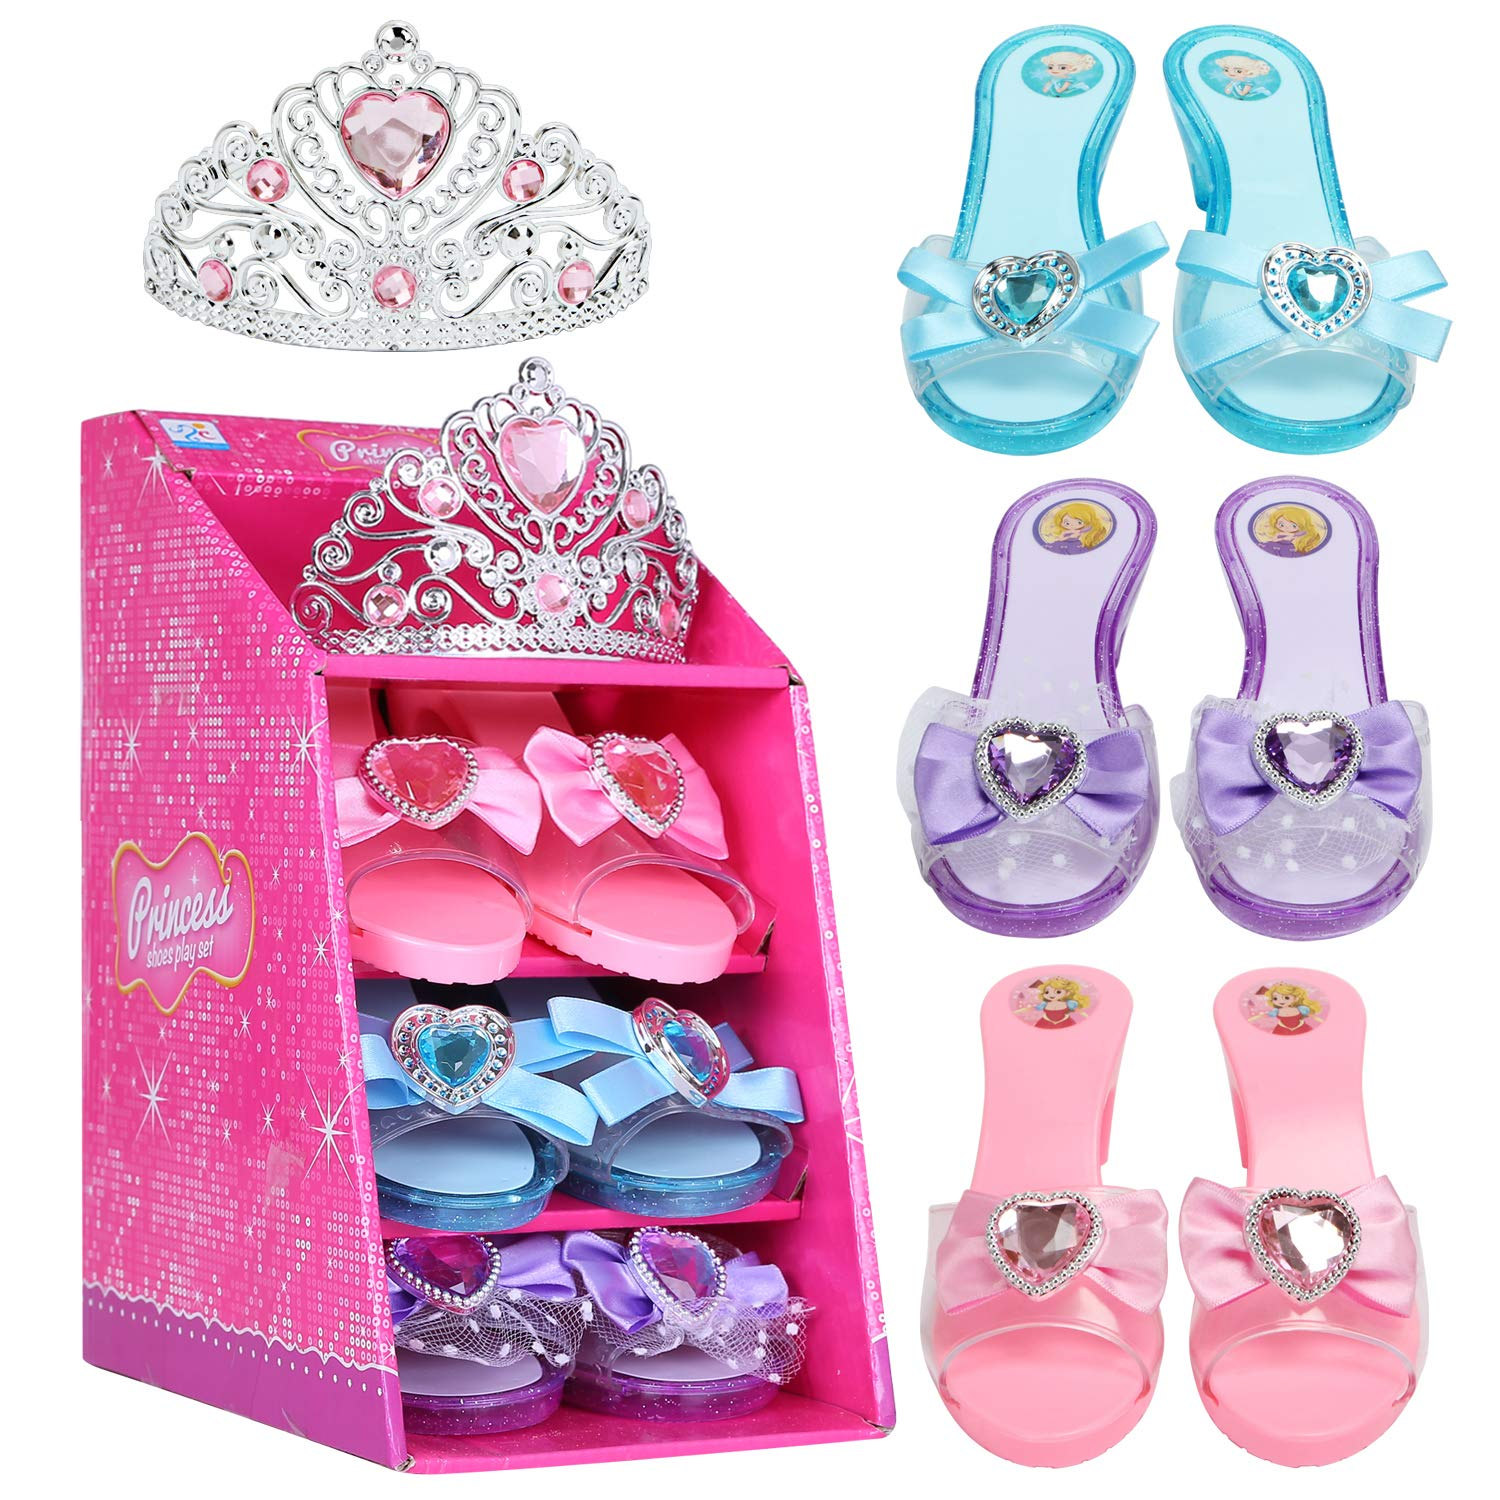 Mastom Girls Play Set! Princess Dress Up & Play Shoe and Tiara (3 Pairs of Shoes + 1 Tiara) Role Play Collection Fashion Princess Shoes Birthday Party Favor Gift Set for Little Girls